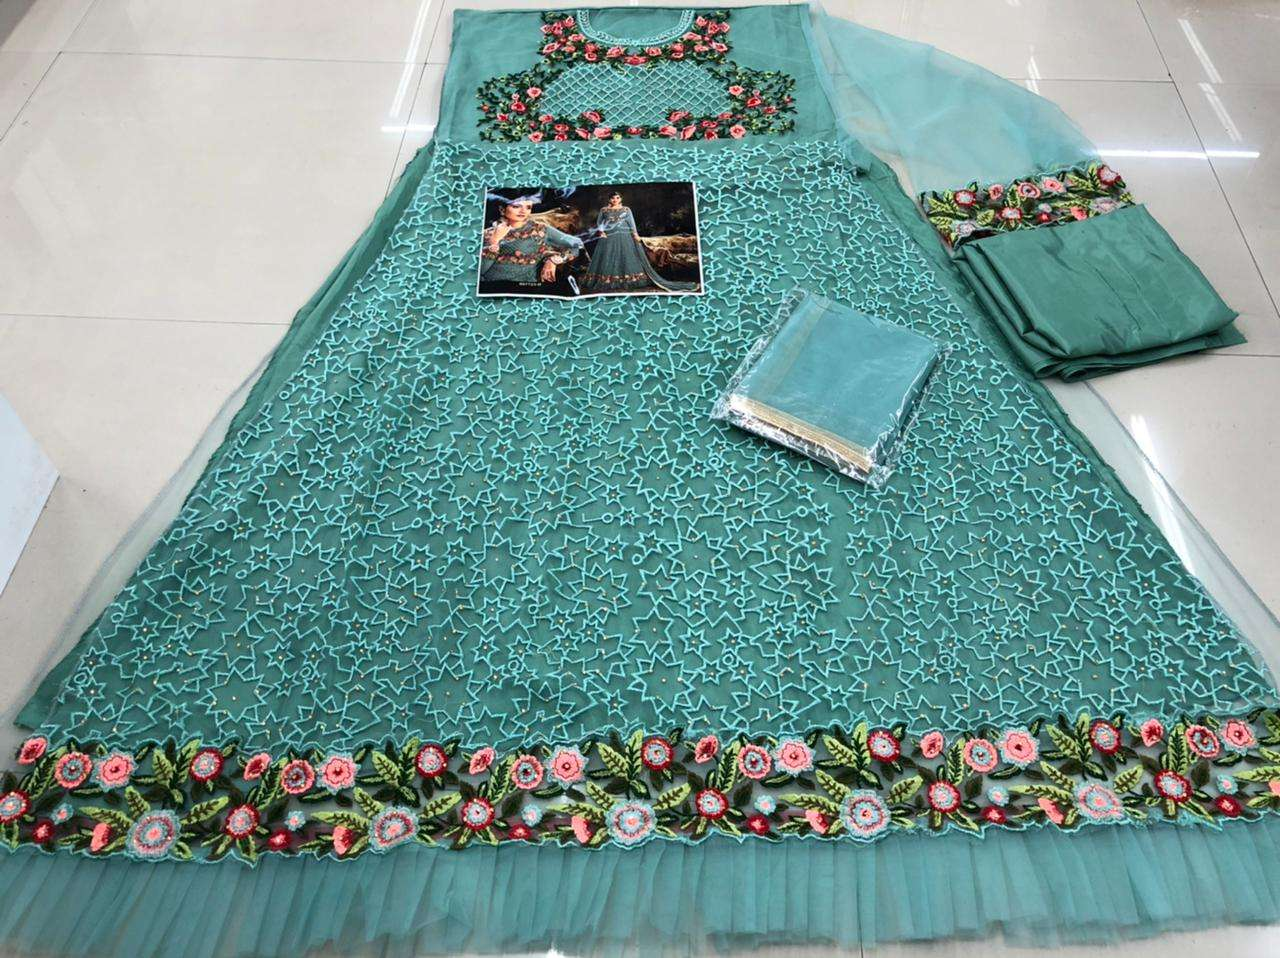 HOTLADYY 7723 04 DESIGNER HEAVY NET EMBROIDERY WORK PARTYWEAR UNSTITCHED GOWN WITH DUPATTA IN SINGLES